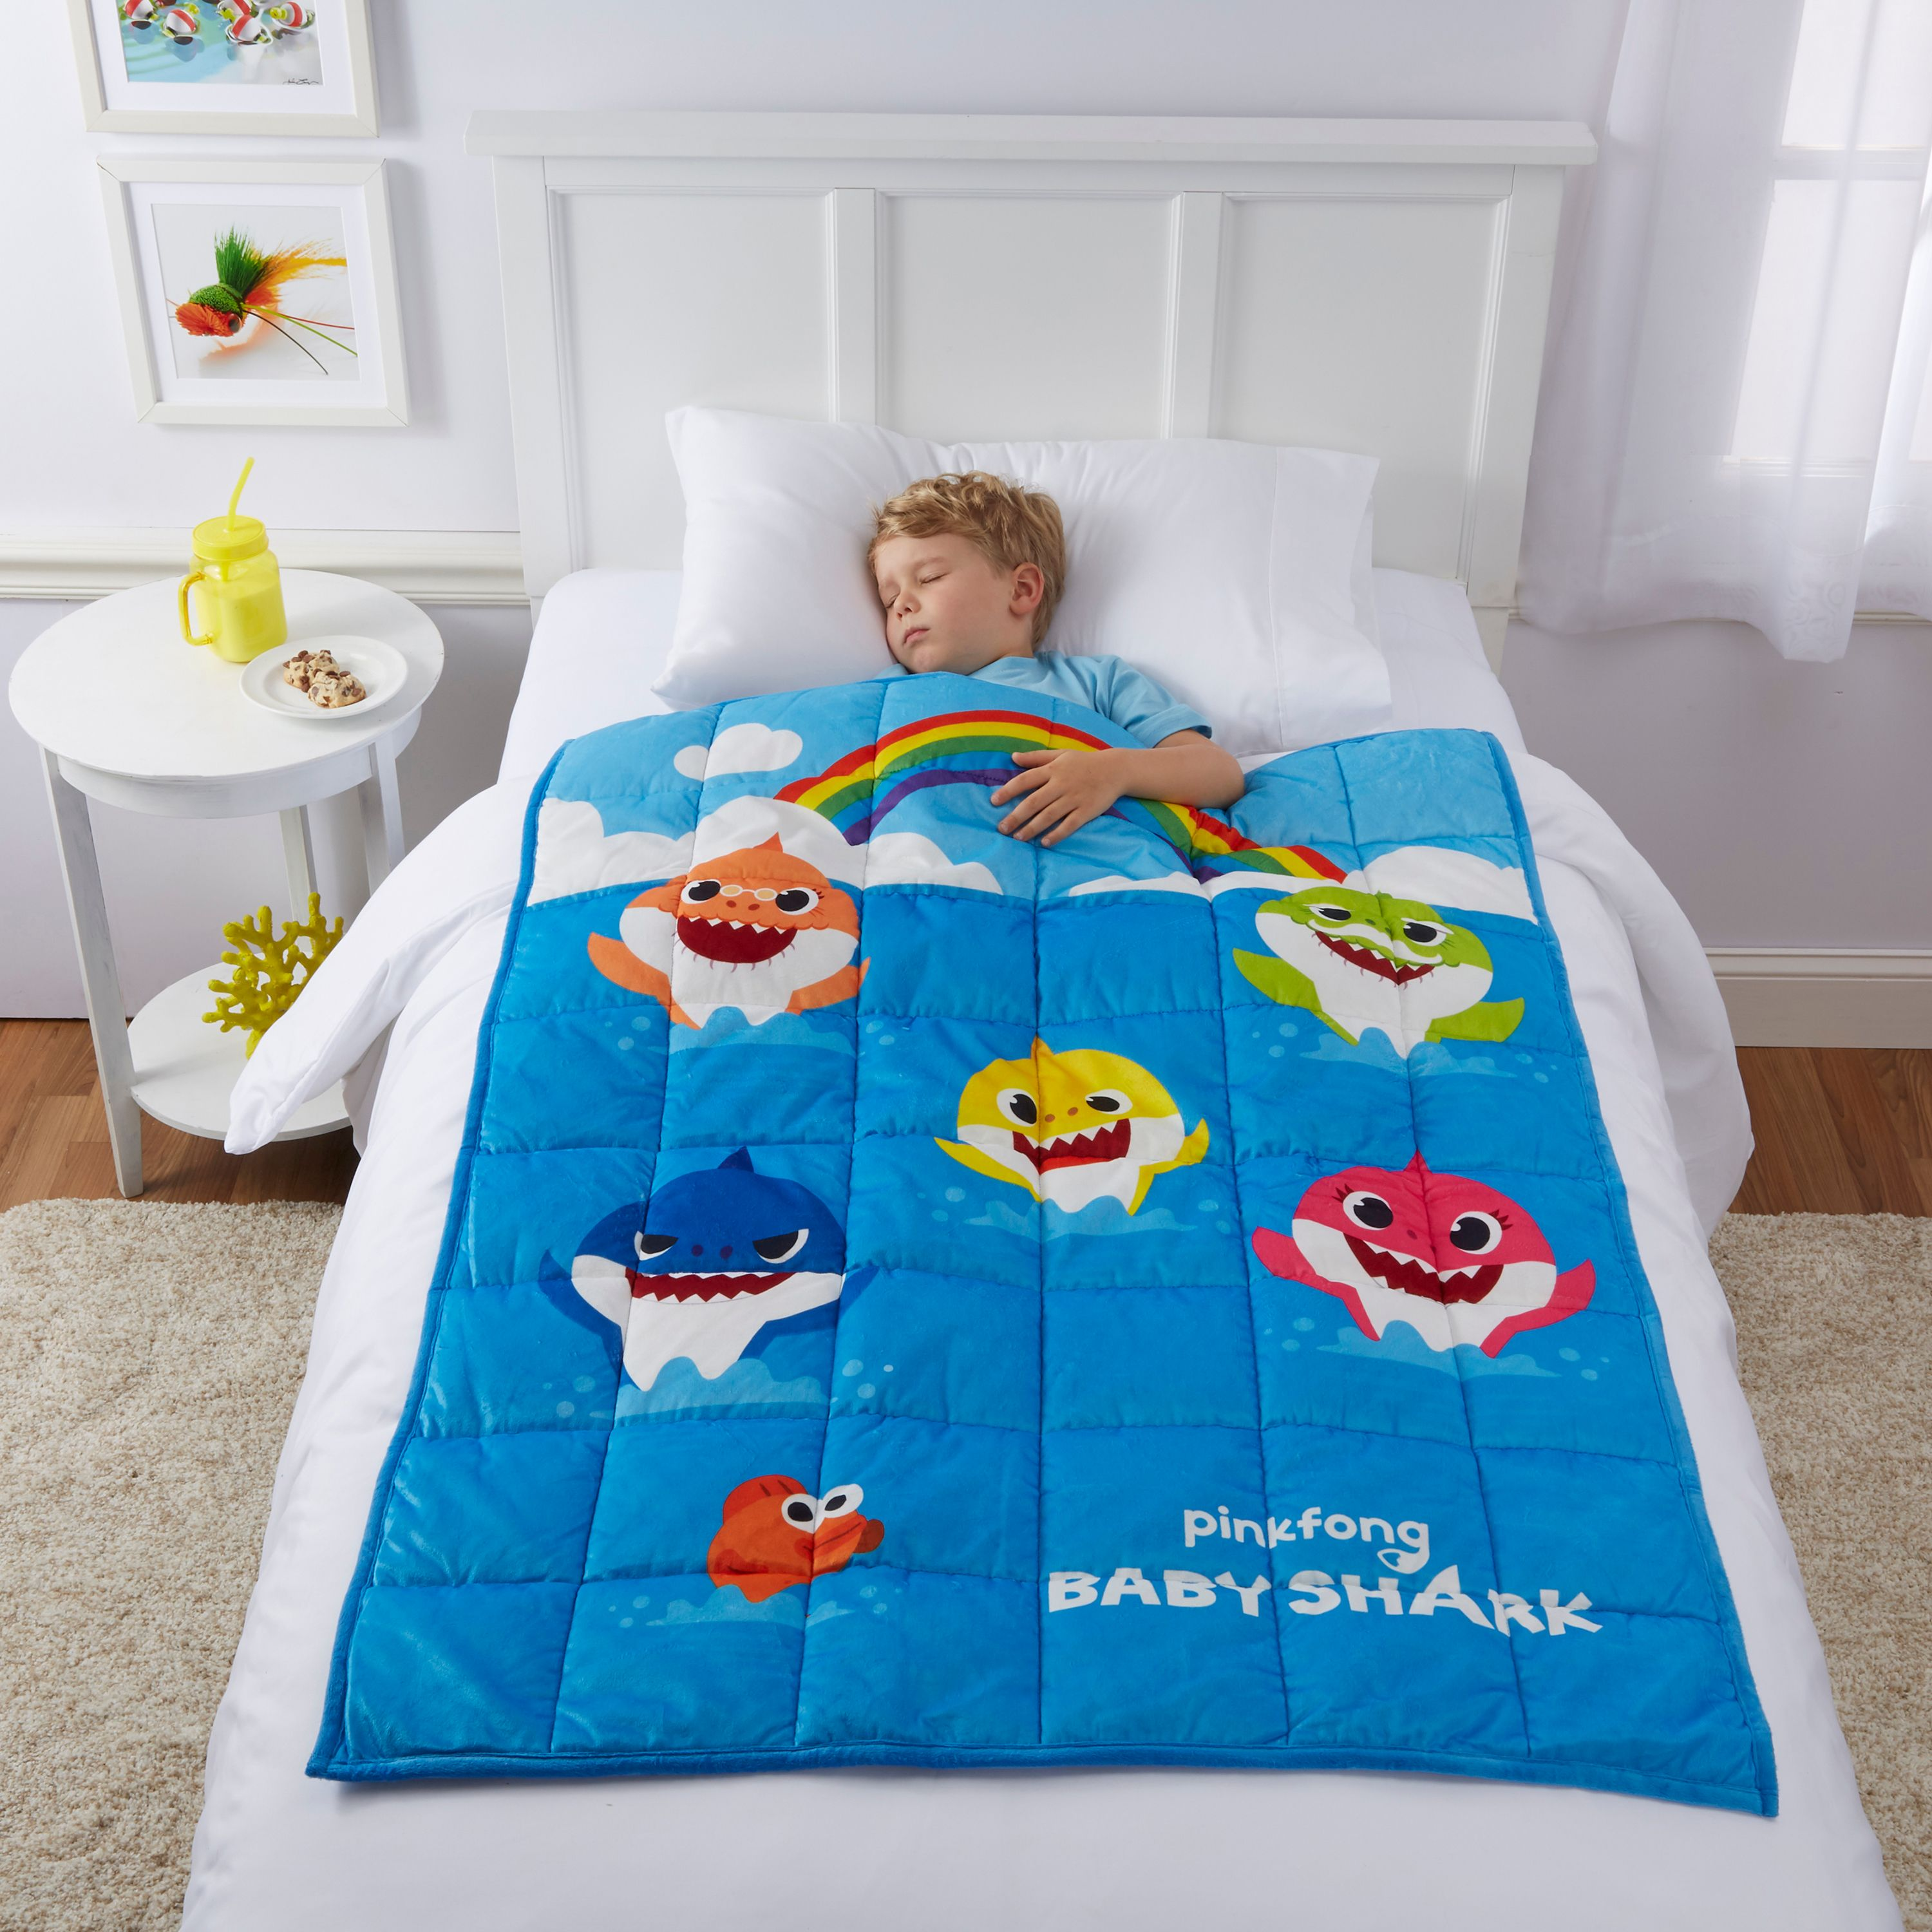 Baby Shark Kids Weighted Blanket, 4.5lb, 36 x 48, Fountain of Tooth, Walmart.com EXCLUSIVE!